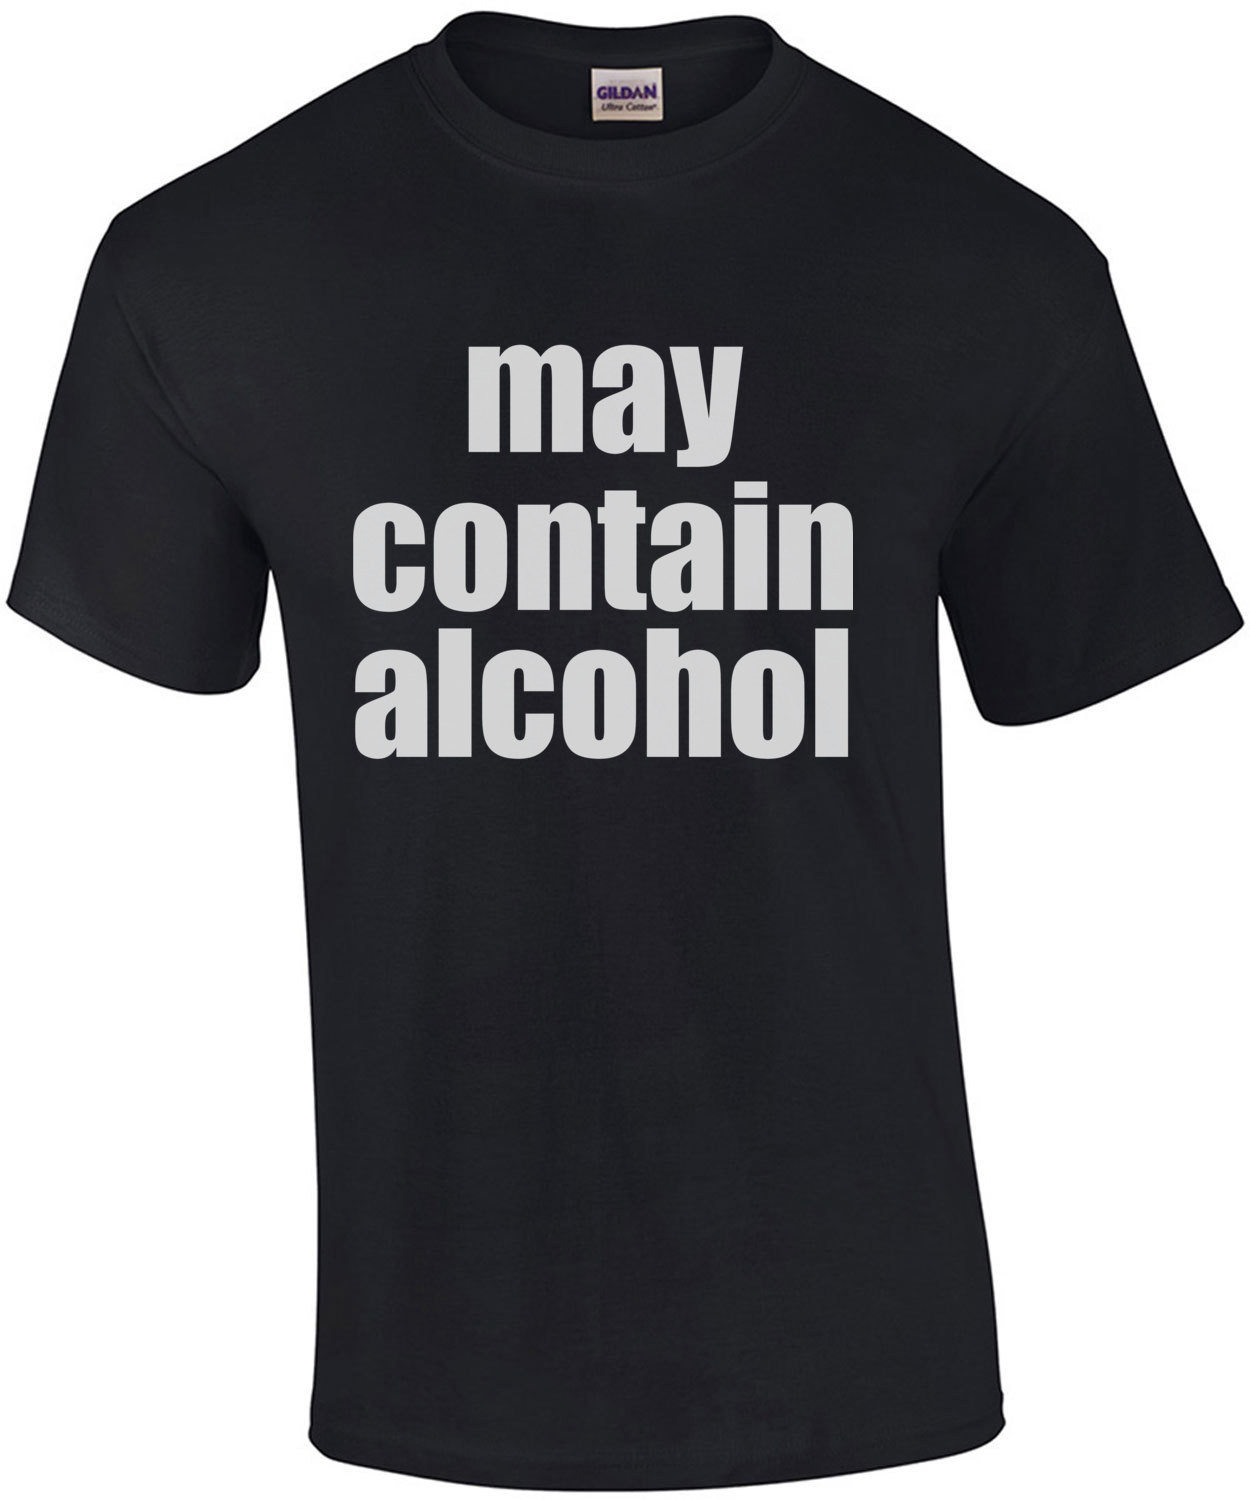 May Contain Alcohol - Funny Drinking T-Shirt